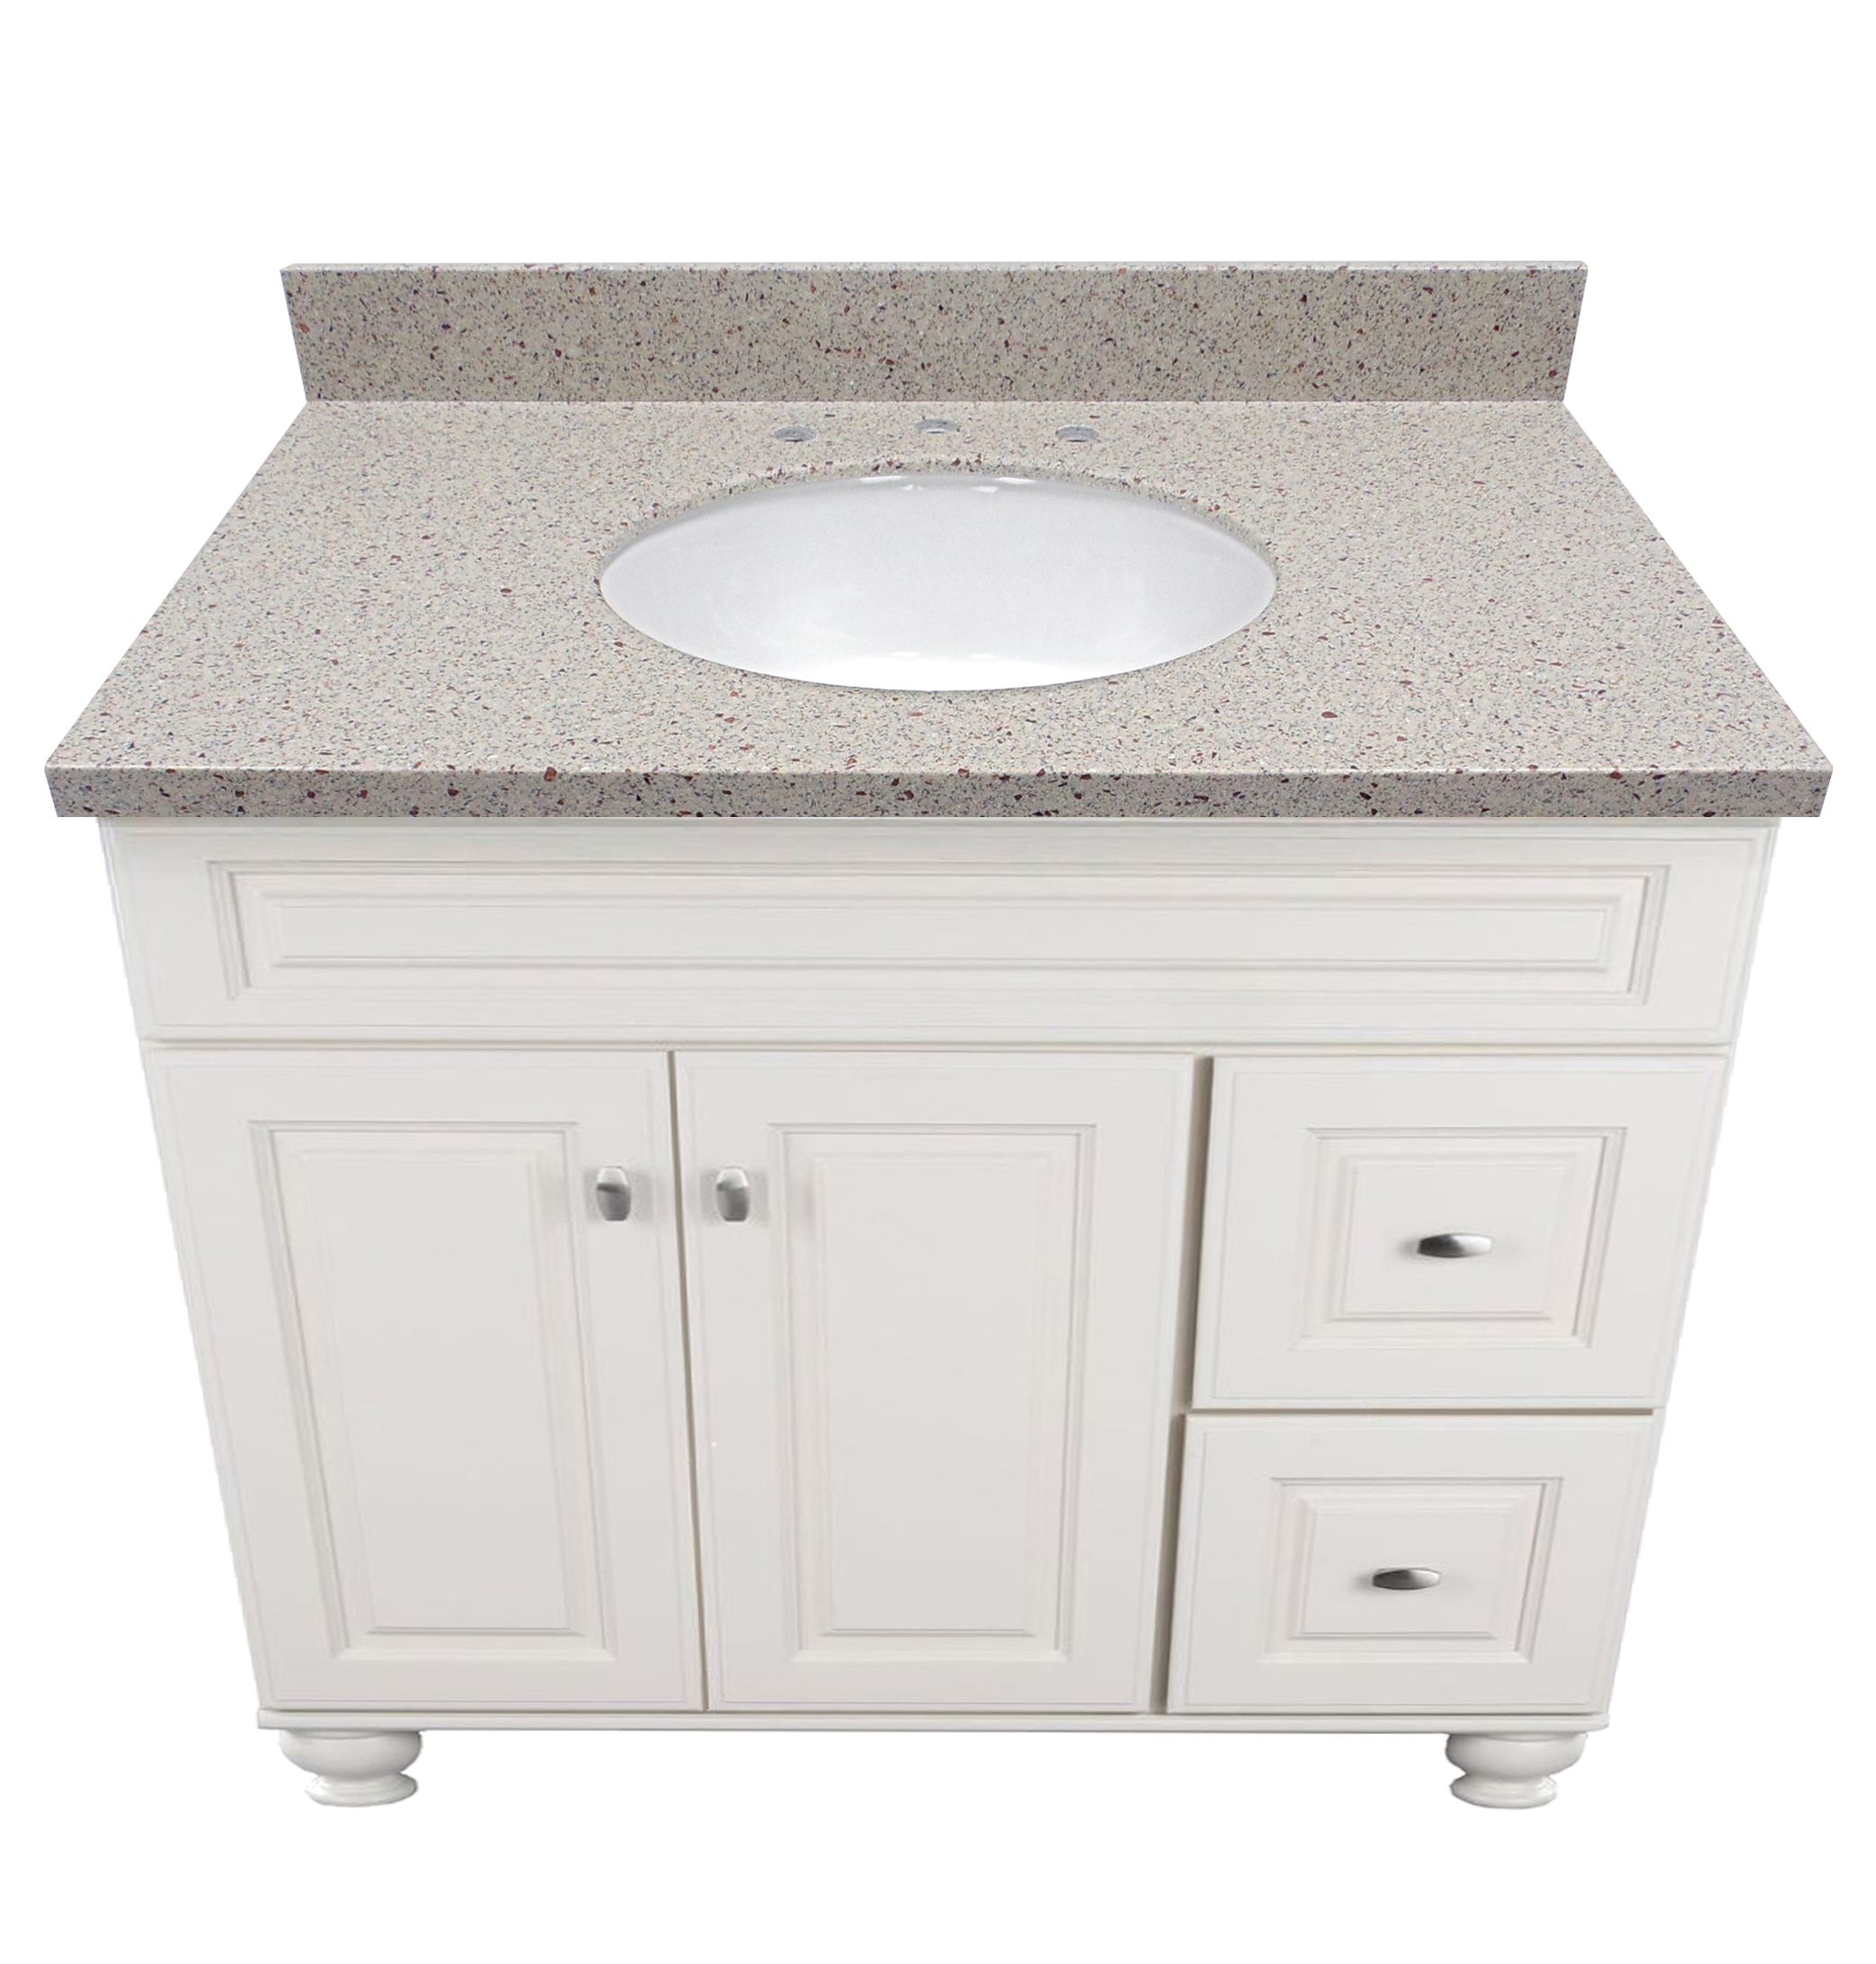 Evercor Solid Surface Vanity Top Shown In Knottingham With White